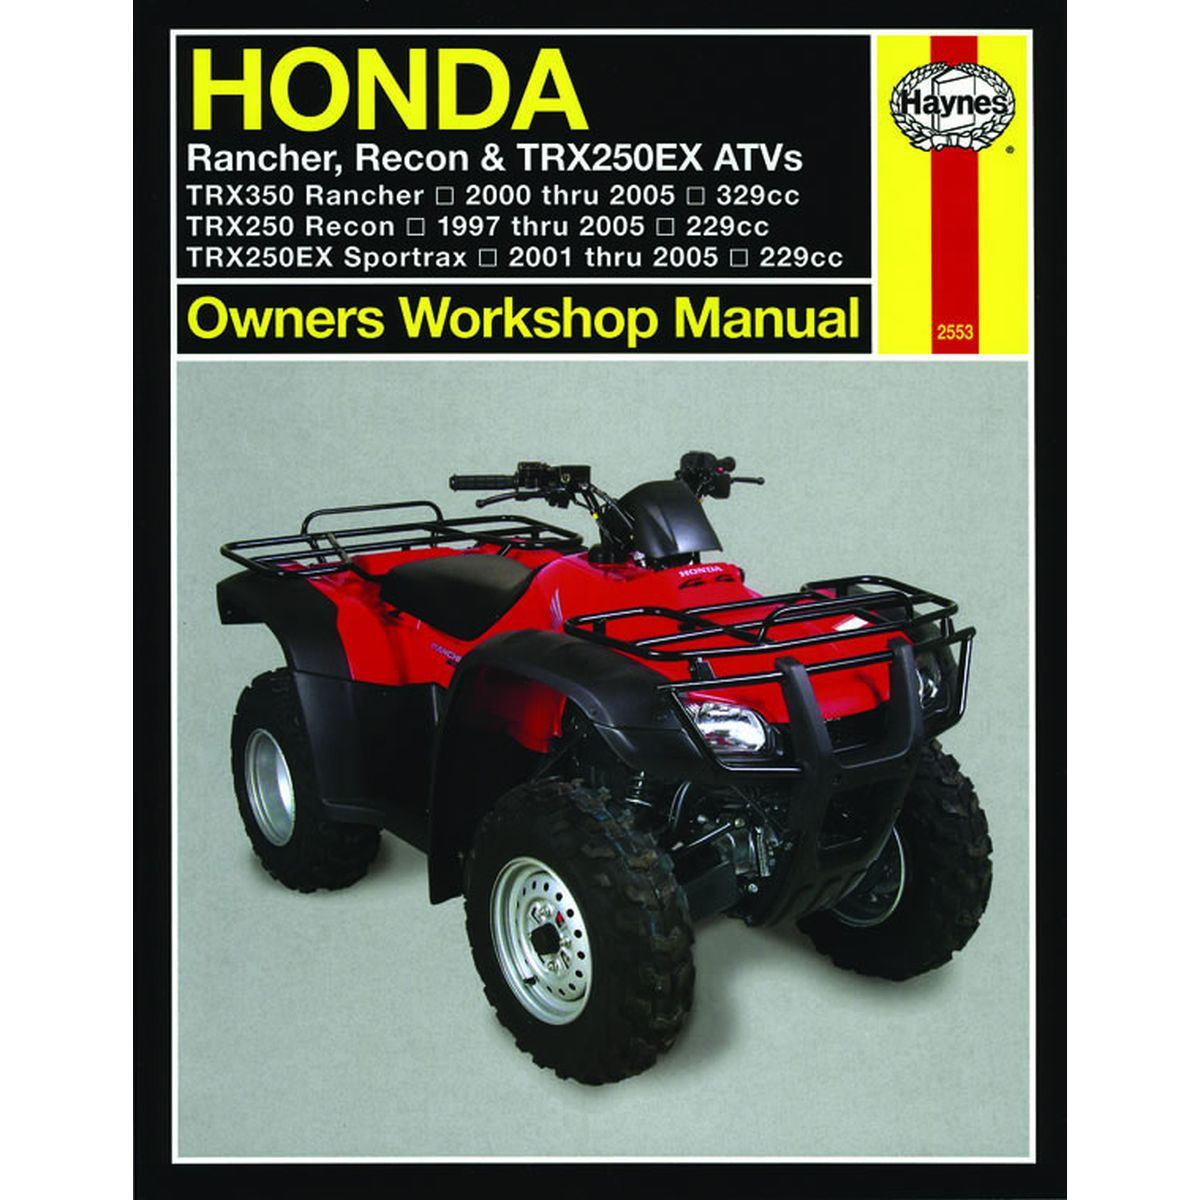 2002 honda foreman 450 service manual free download